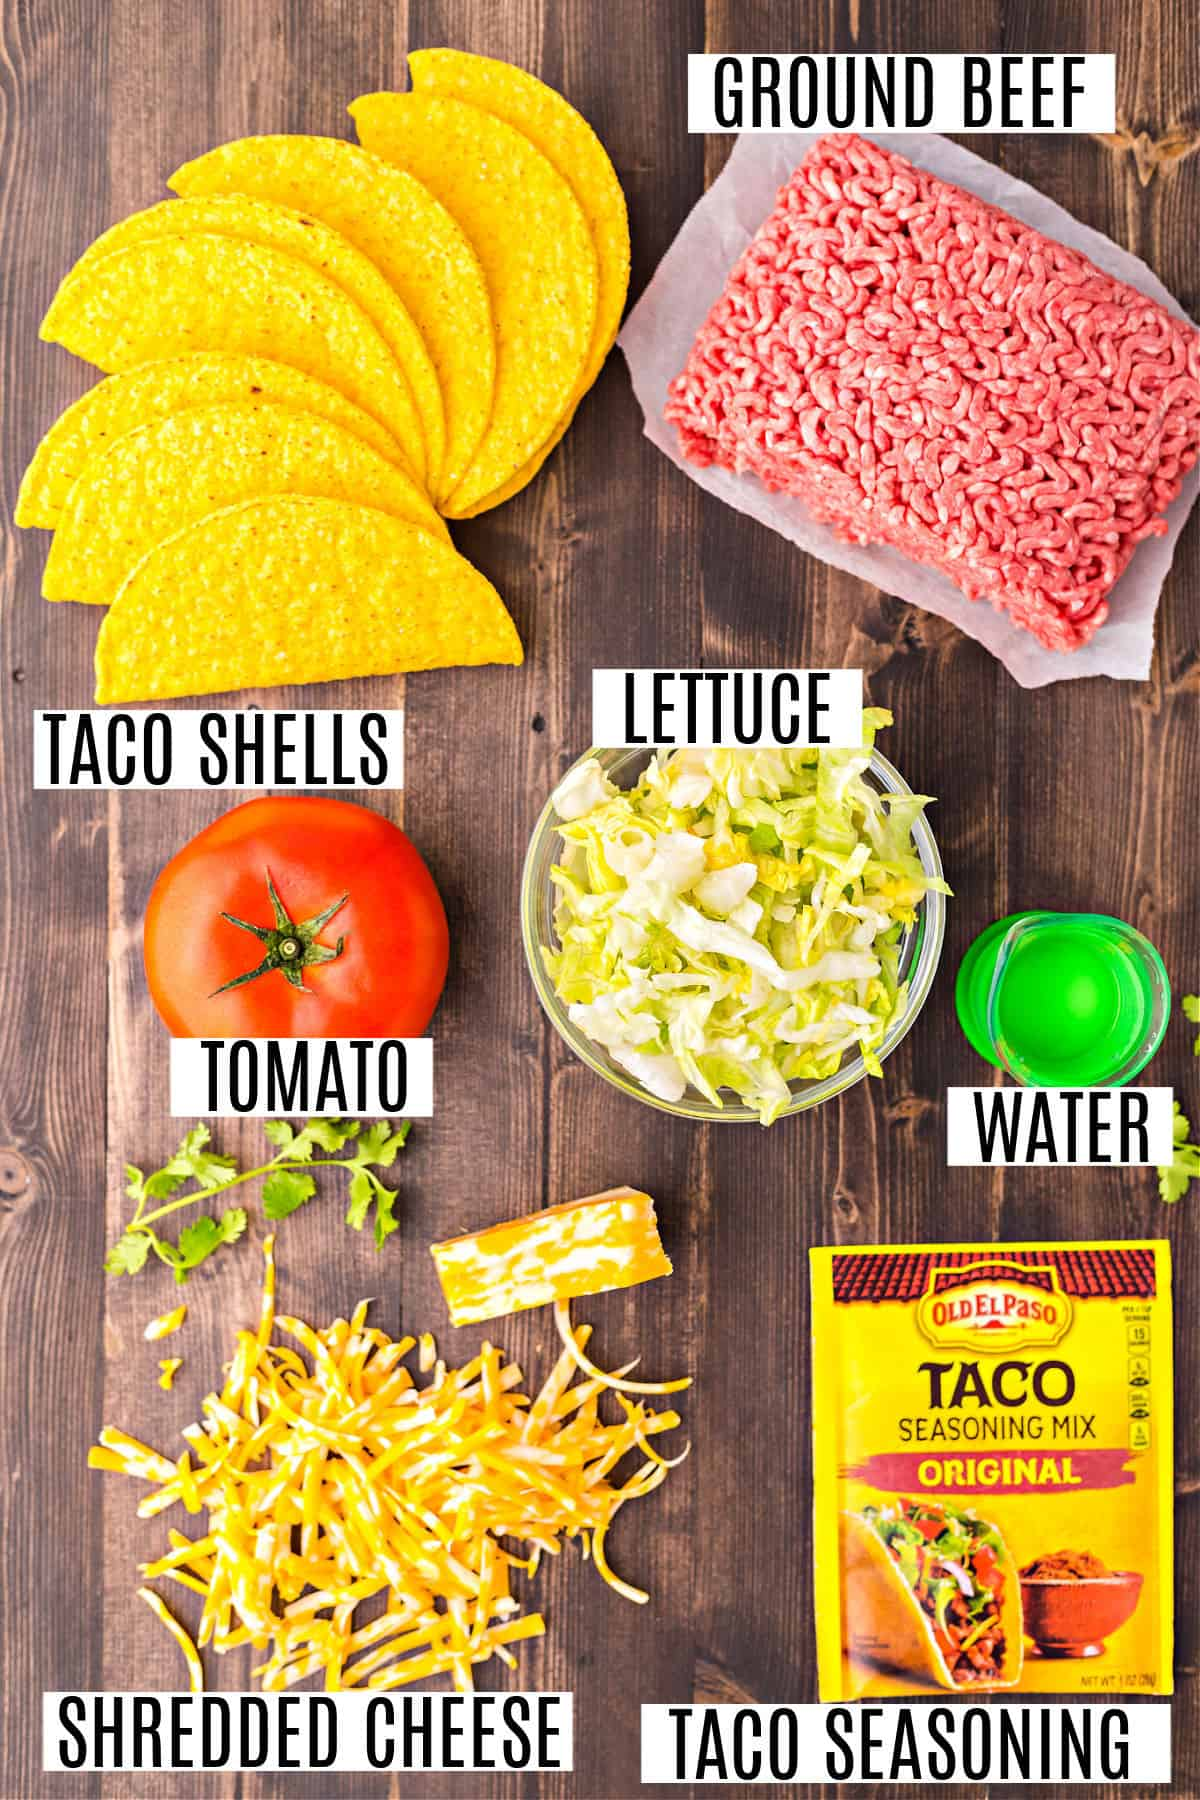 Ingredients needed for baked taco recipe.